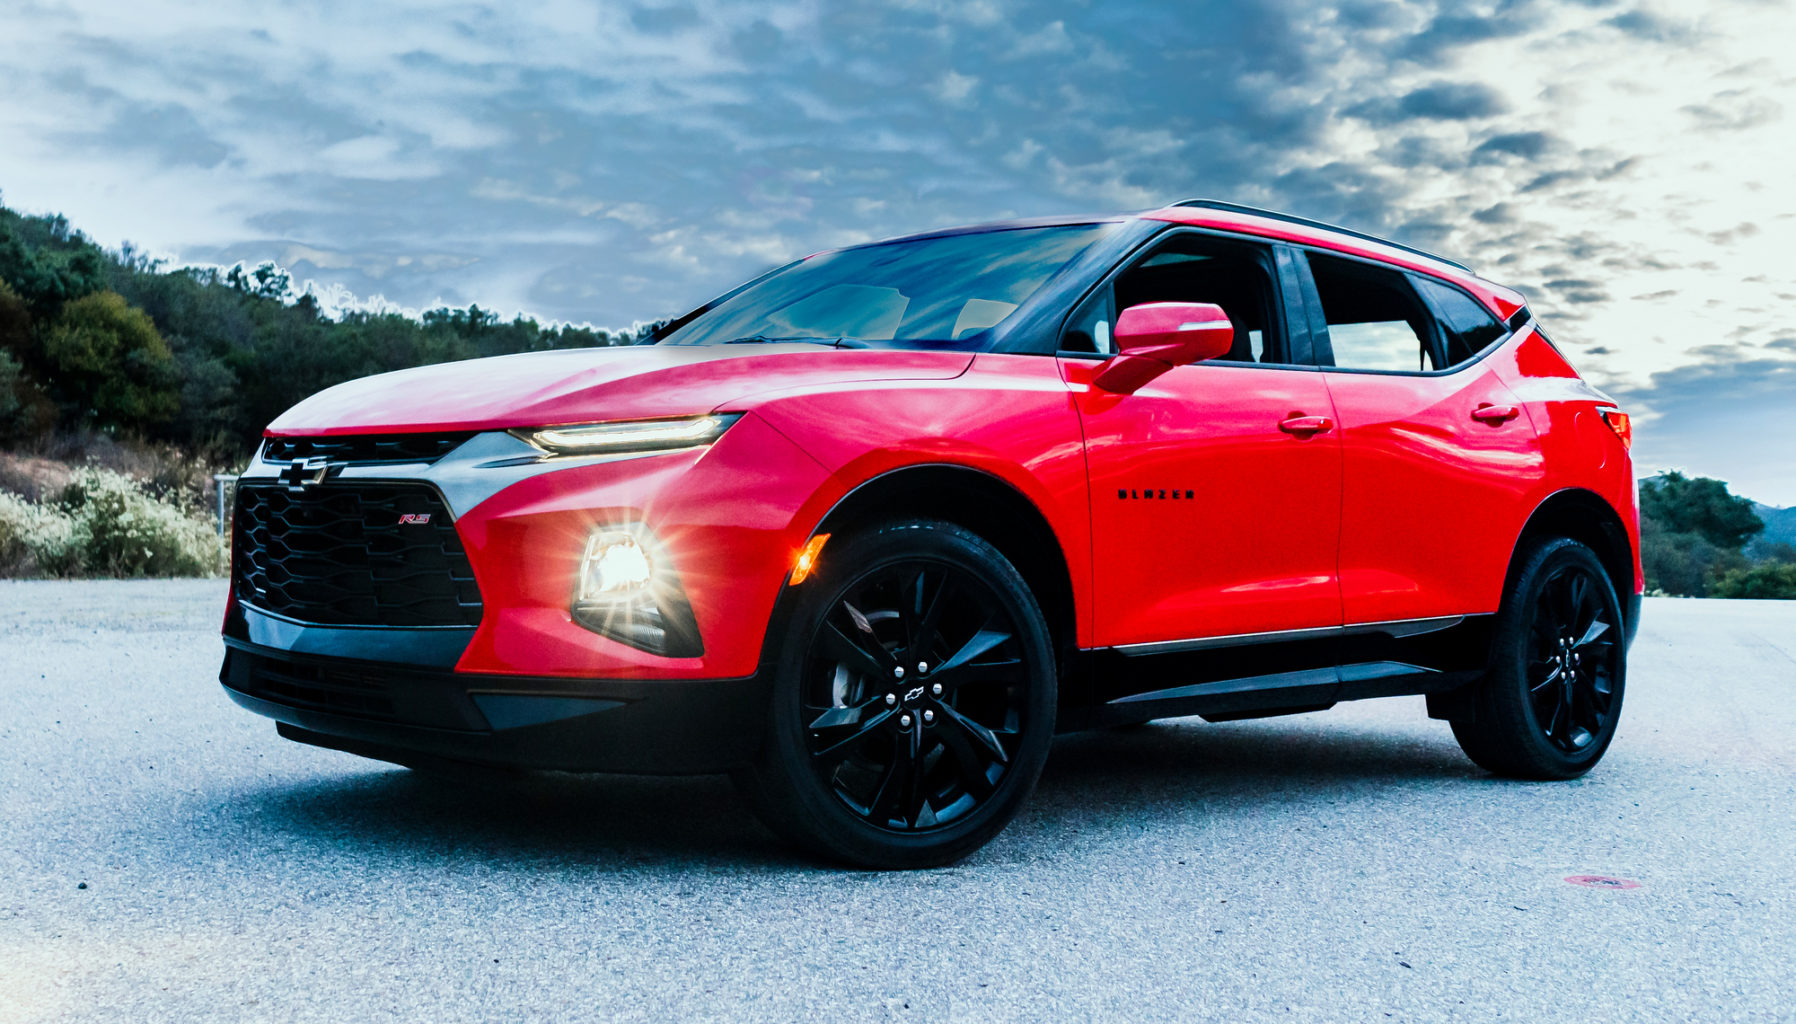 Road Test: 2019 Chevrolet Blazer Rs Awd | Clean Fleet Report 2022 Chevy Blazer Autotrader, Lease, Build